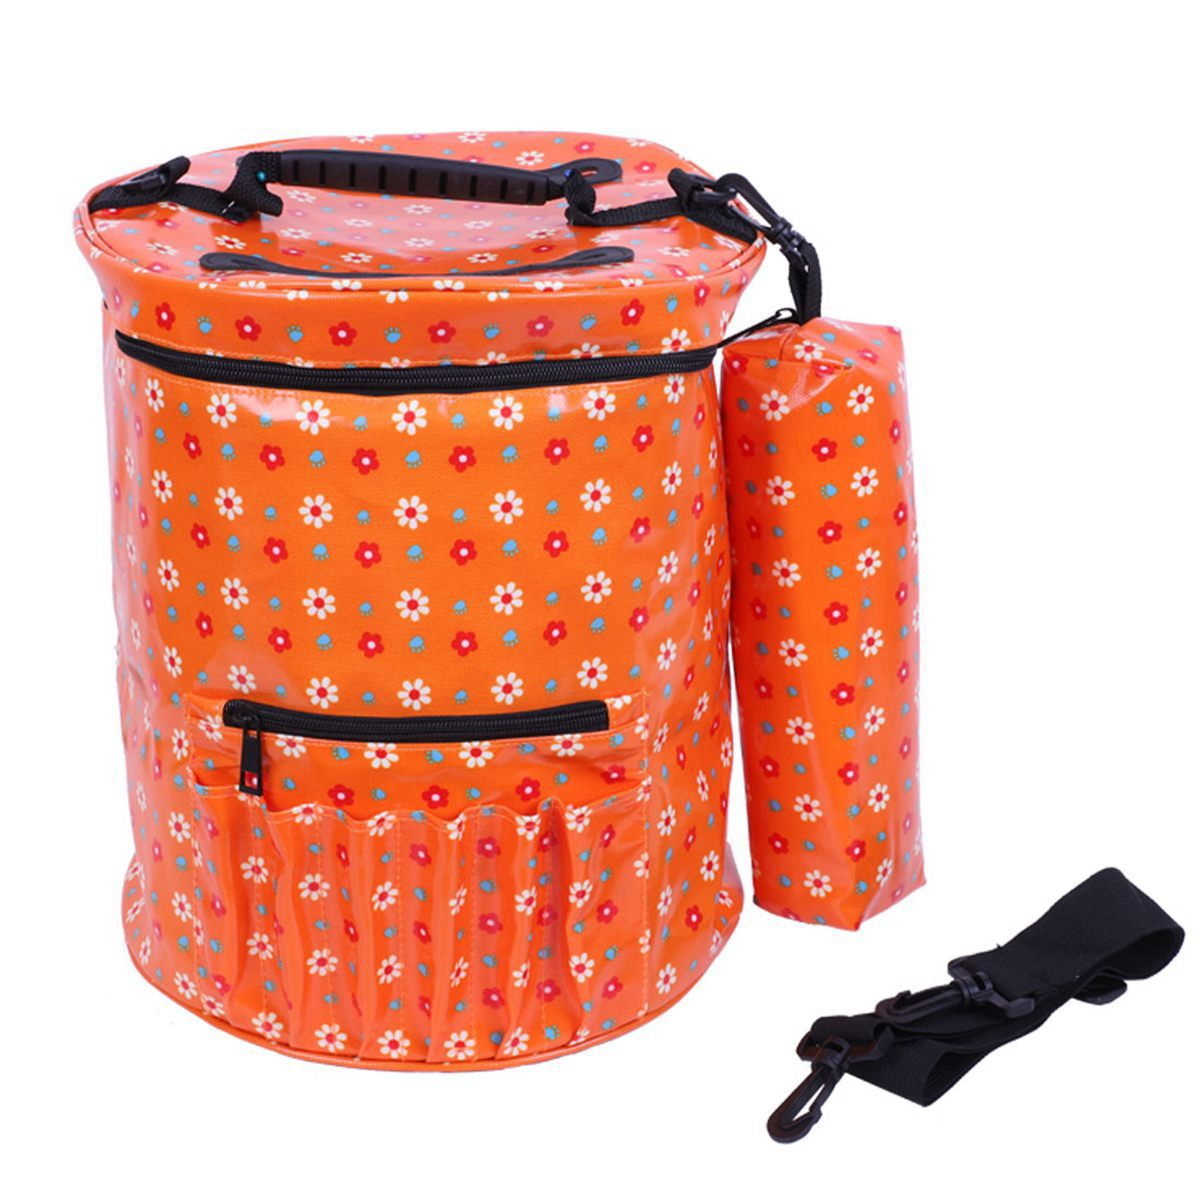 Hot sale Yarn Bag,Bloomma Waterproof Canvas Knitting Bag with Shoulder Strap Crochet and Needles Hooks Accessories Wool Storag